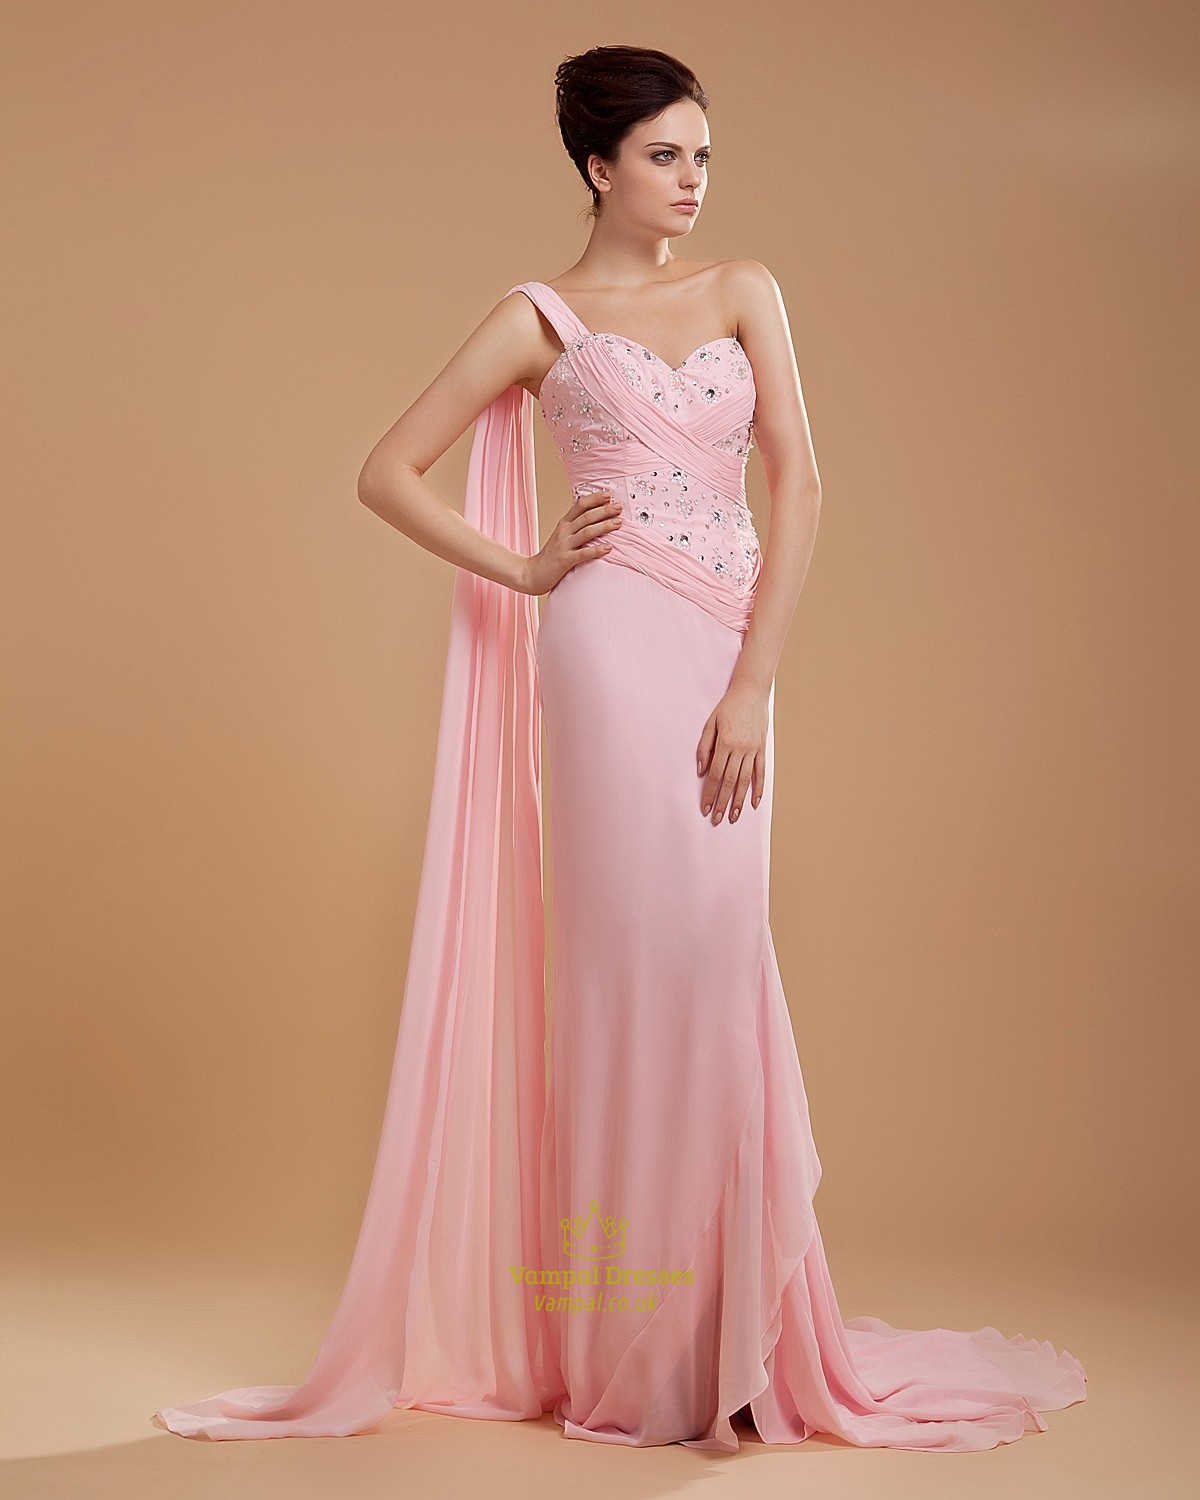 One Shoulder Light Pink Bridesmaid Dresses Chiffon Long | Vampal Dresses